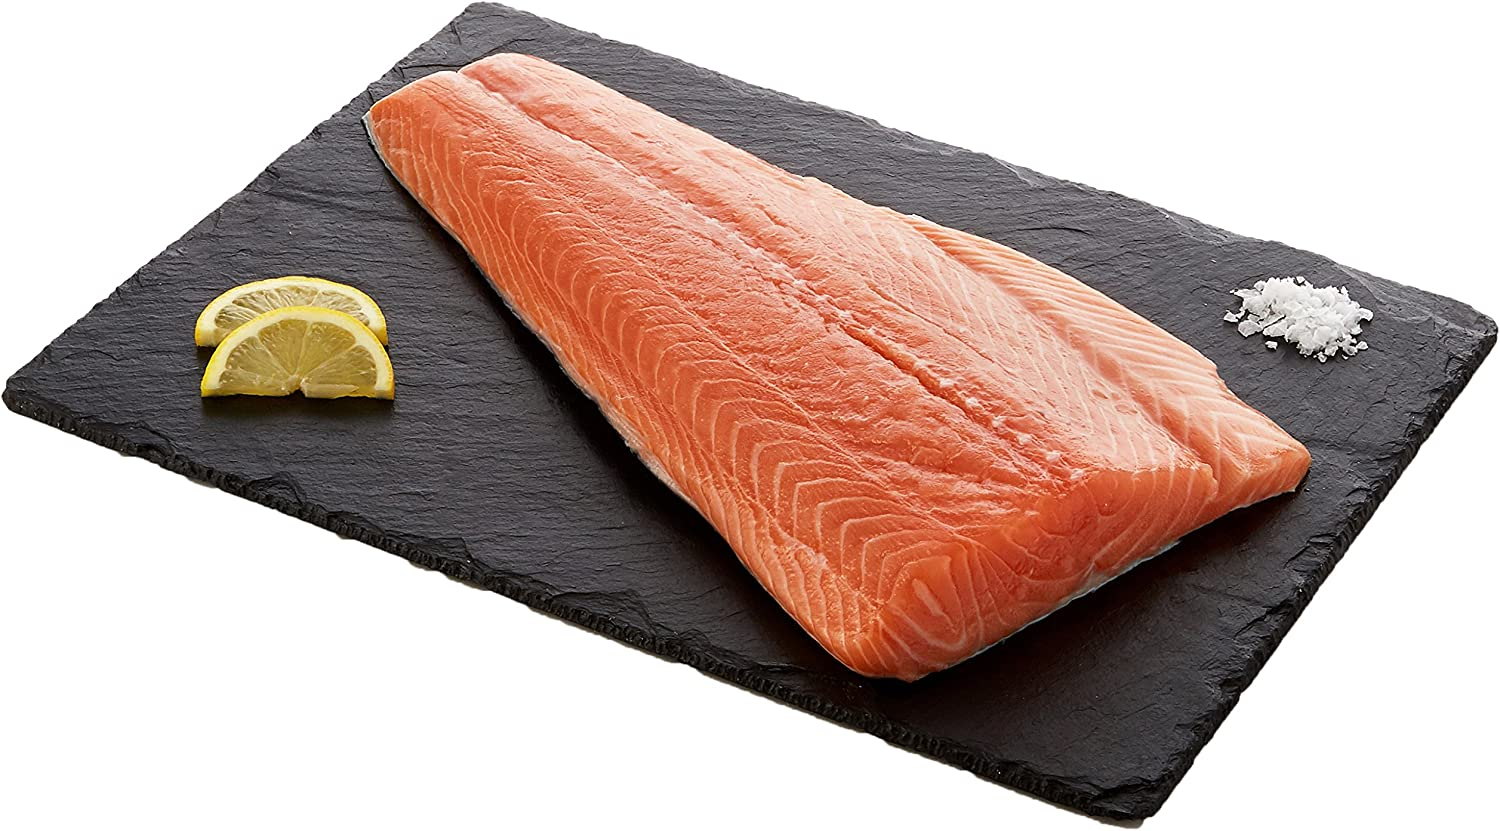 Russell's Half Salmon Side Boneless and Skin On, 850g: Amazon.co.uk: Grocery